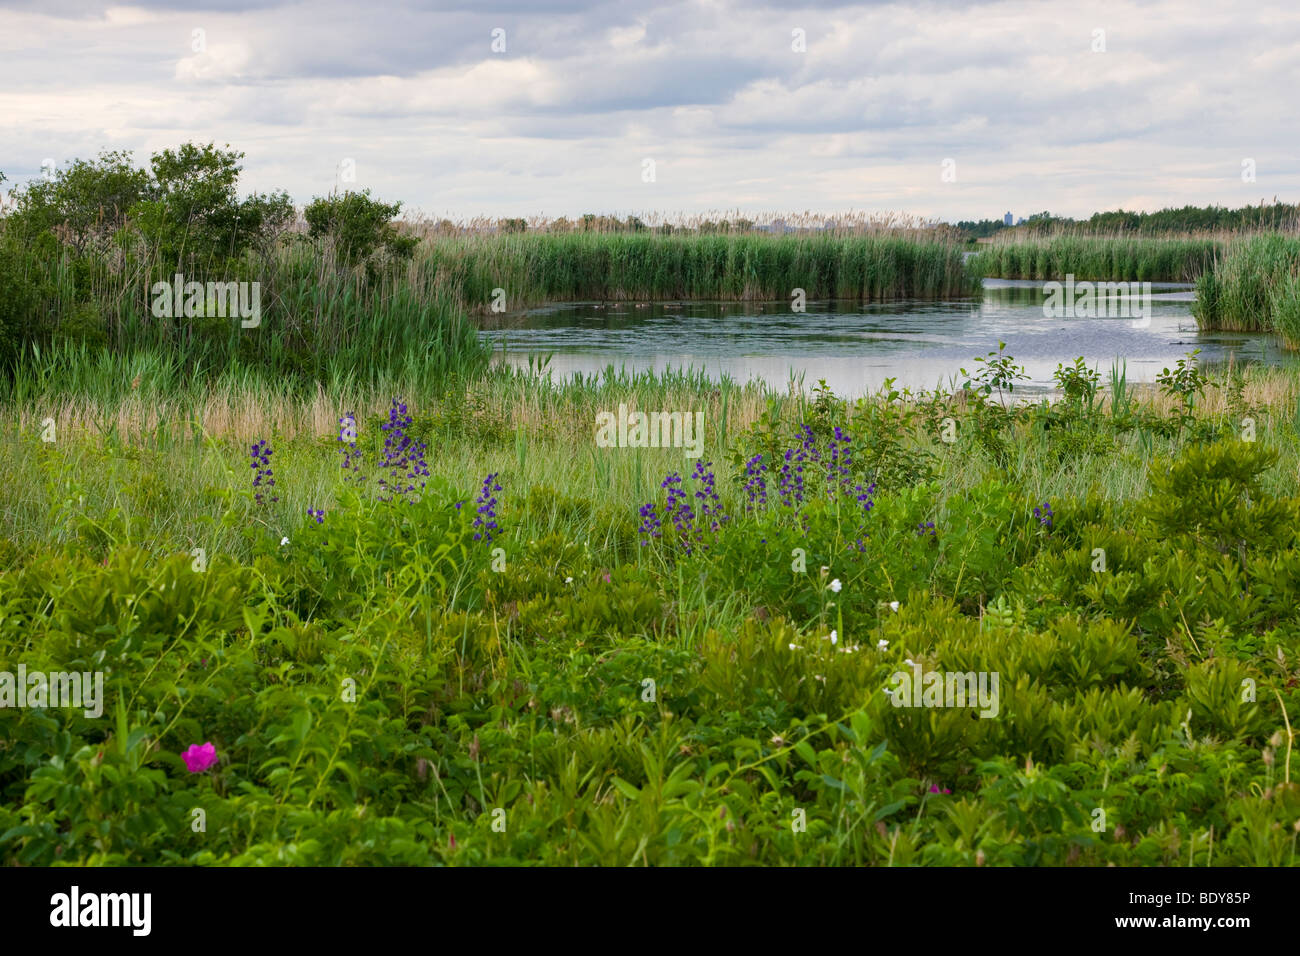 Wildflowers and the West Pond at the Jamaica Bay National Wildlife Refuge, Queens, New York Stock Photo